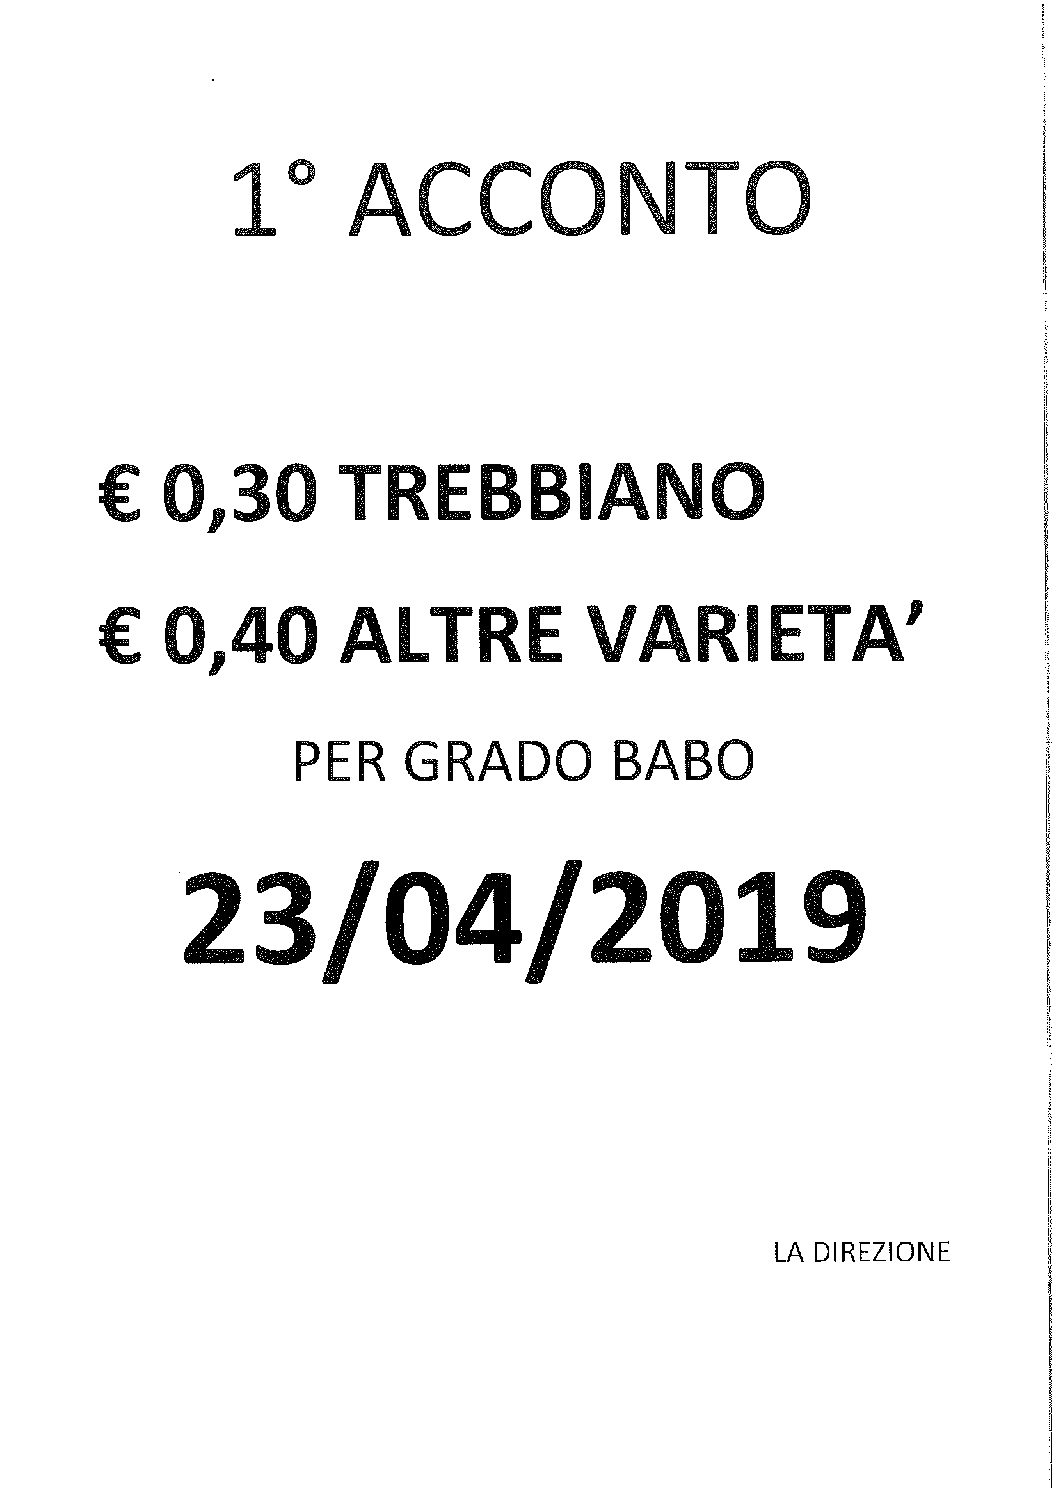 1 ACCONTO VENDEMMIA 2018